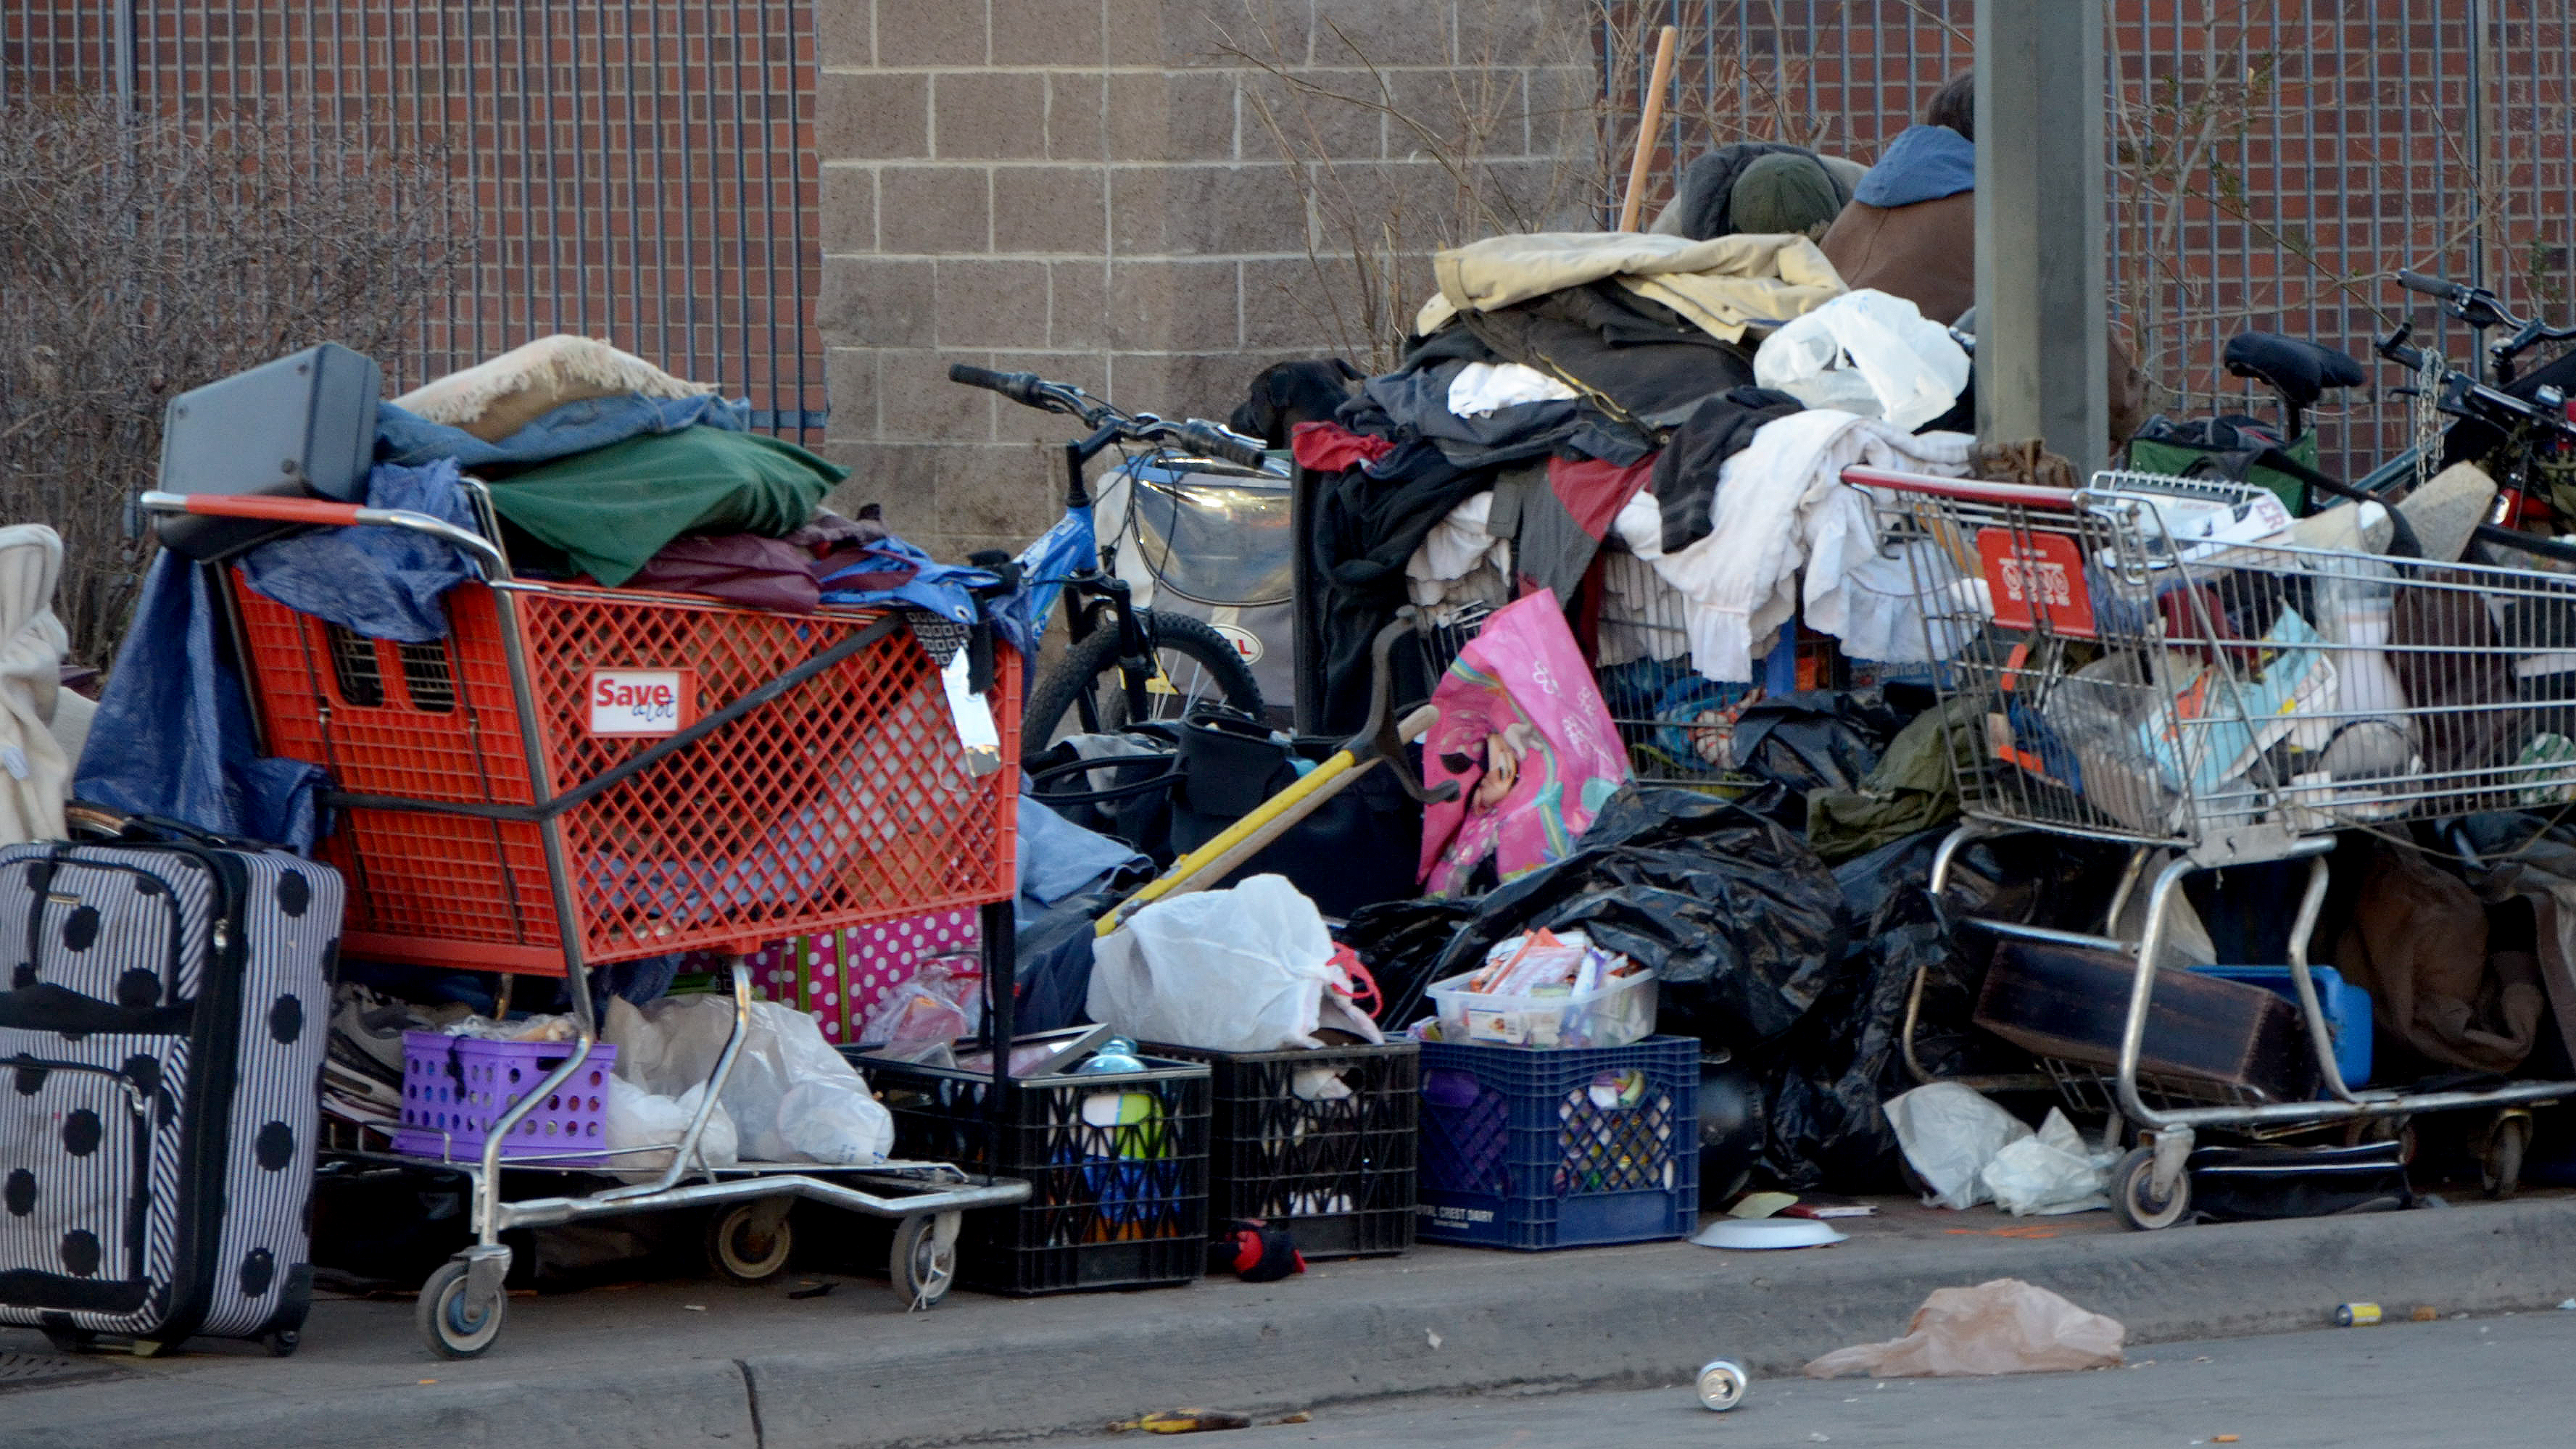 Photo: Homeless camp in downtown Denver, February 2016